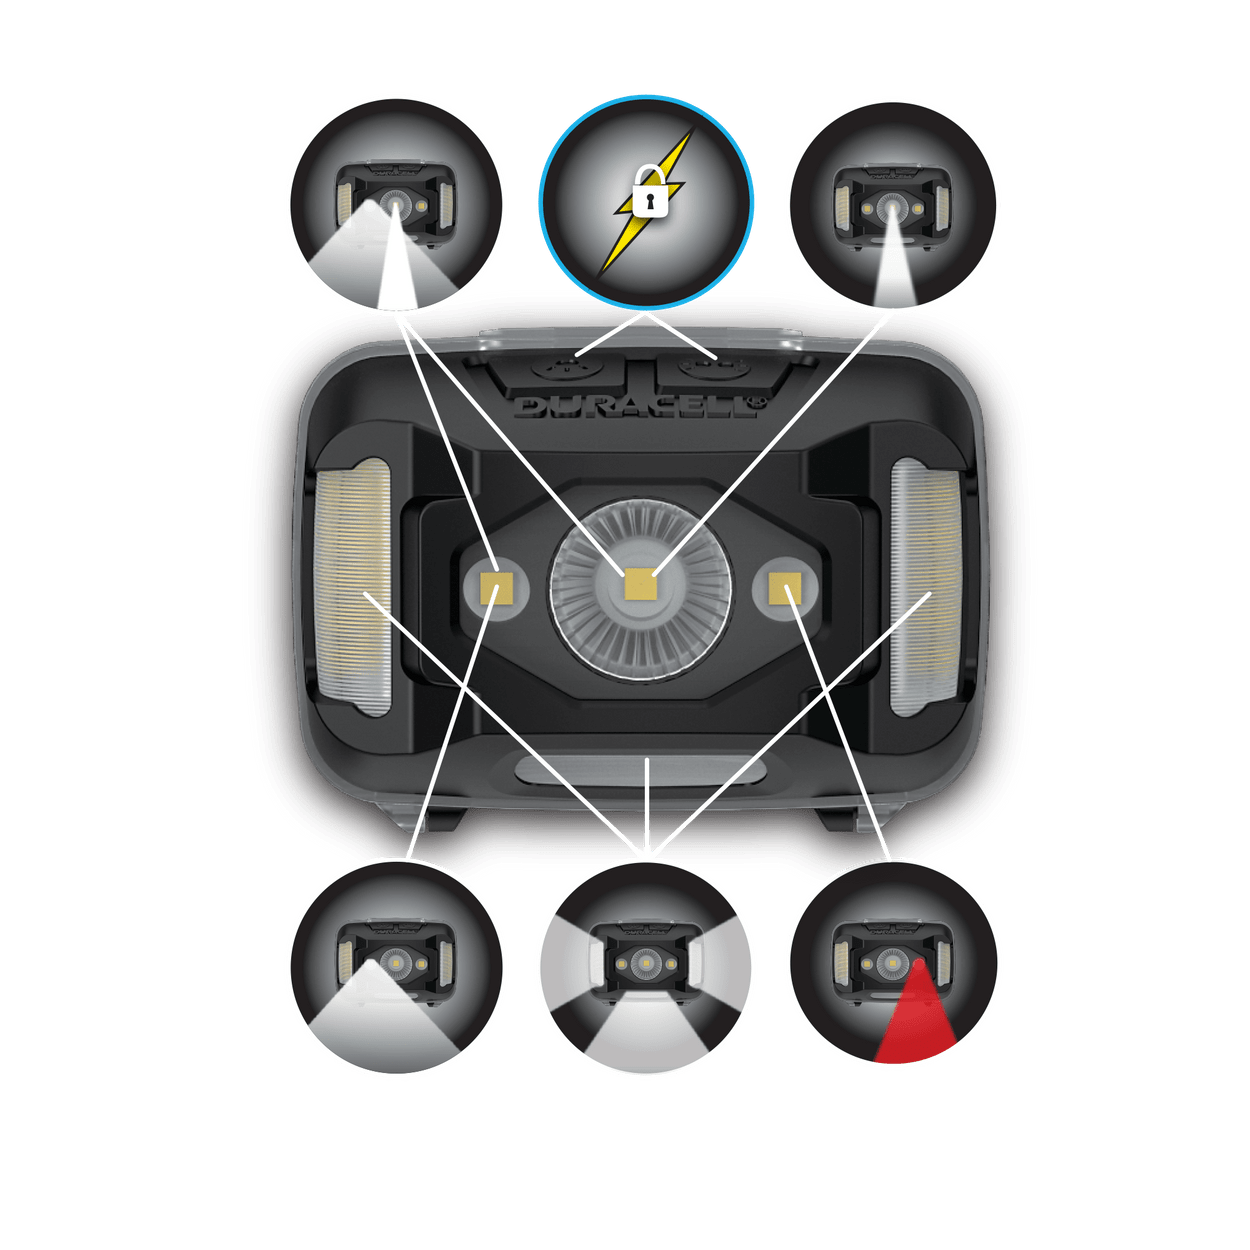 image showing the 6 main functions of the headlamp